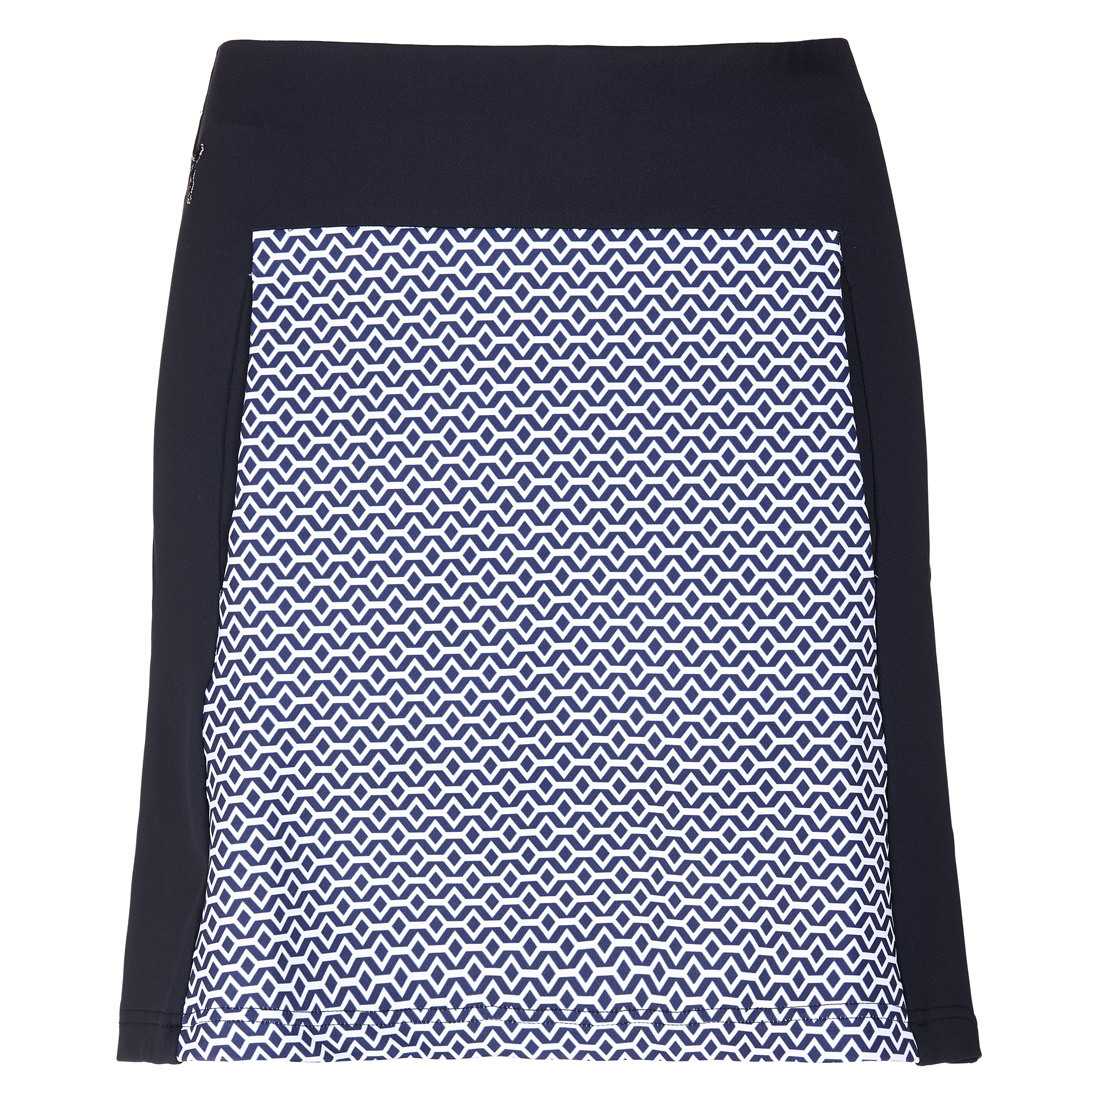 Dry comfort jersey golf skirt with printed pattern and incorporated shorts